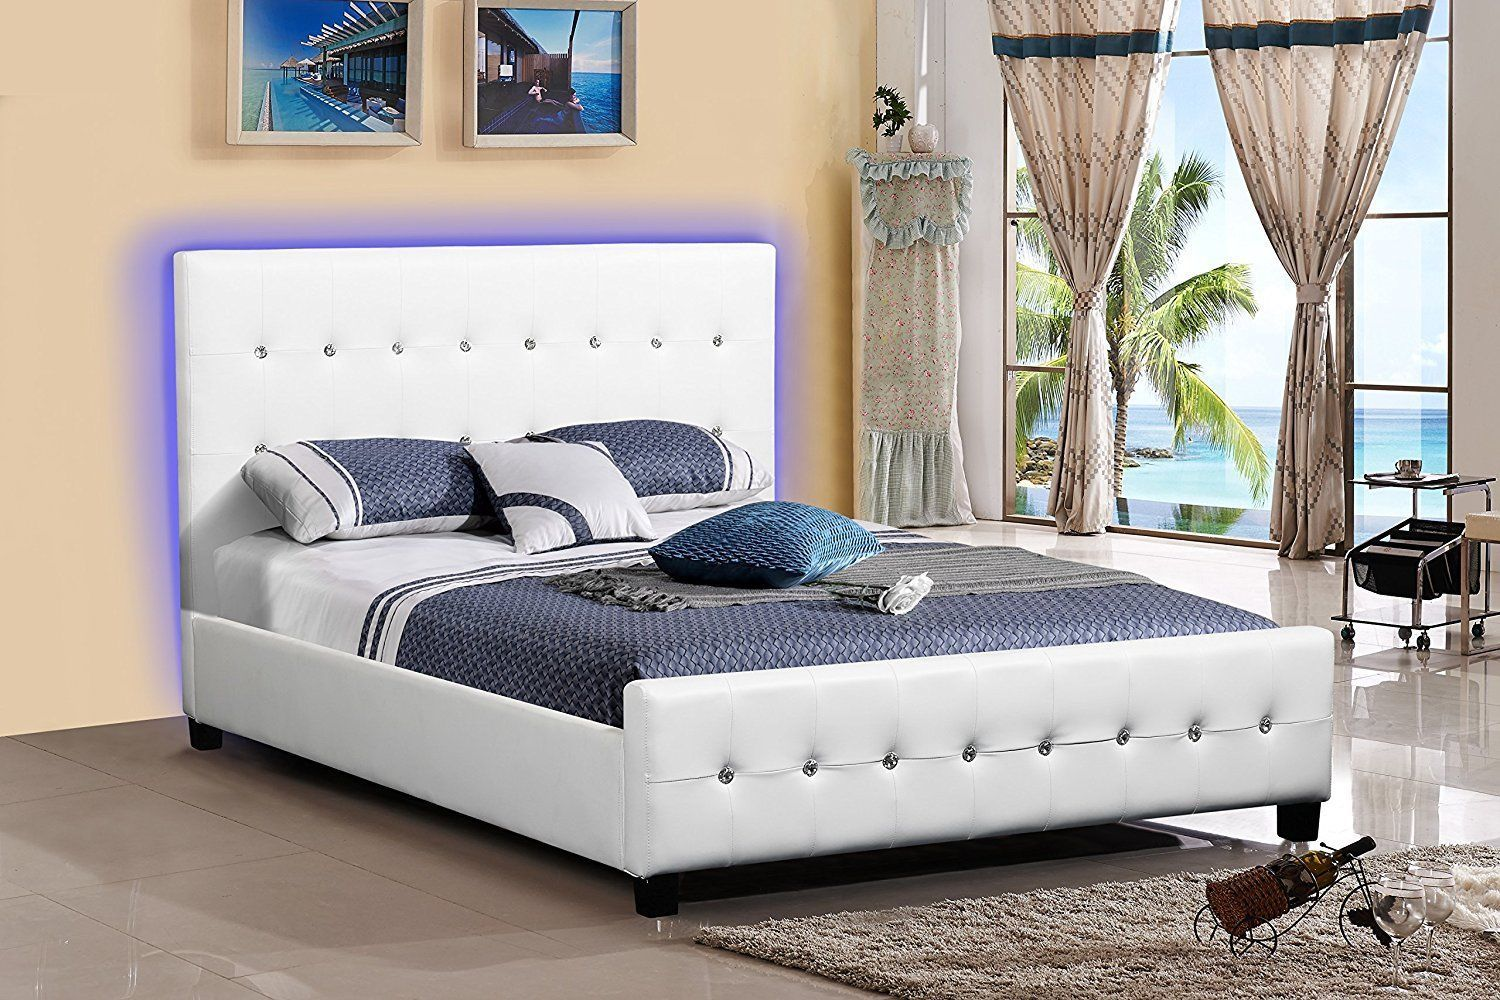 Details about White Leather Look Tufted LED Platform Bed